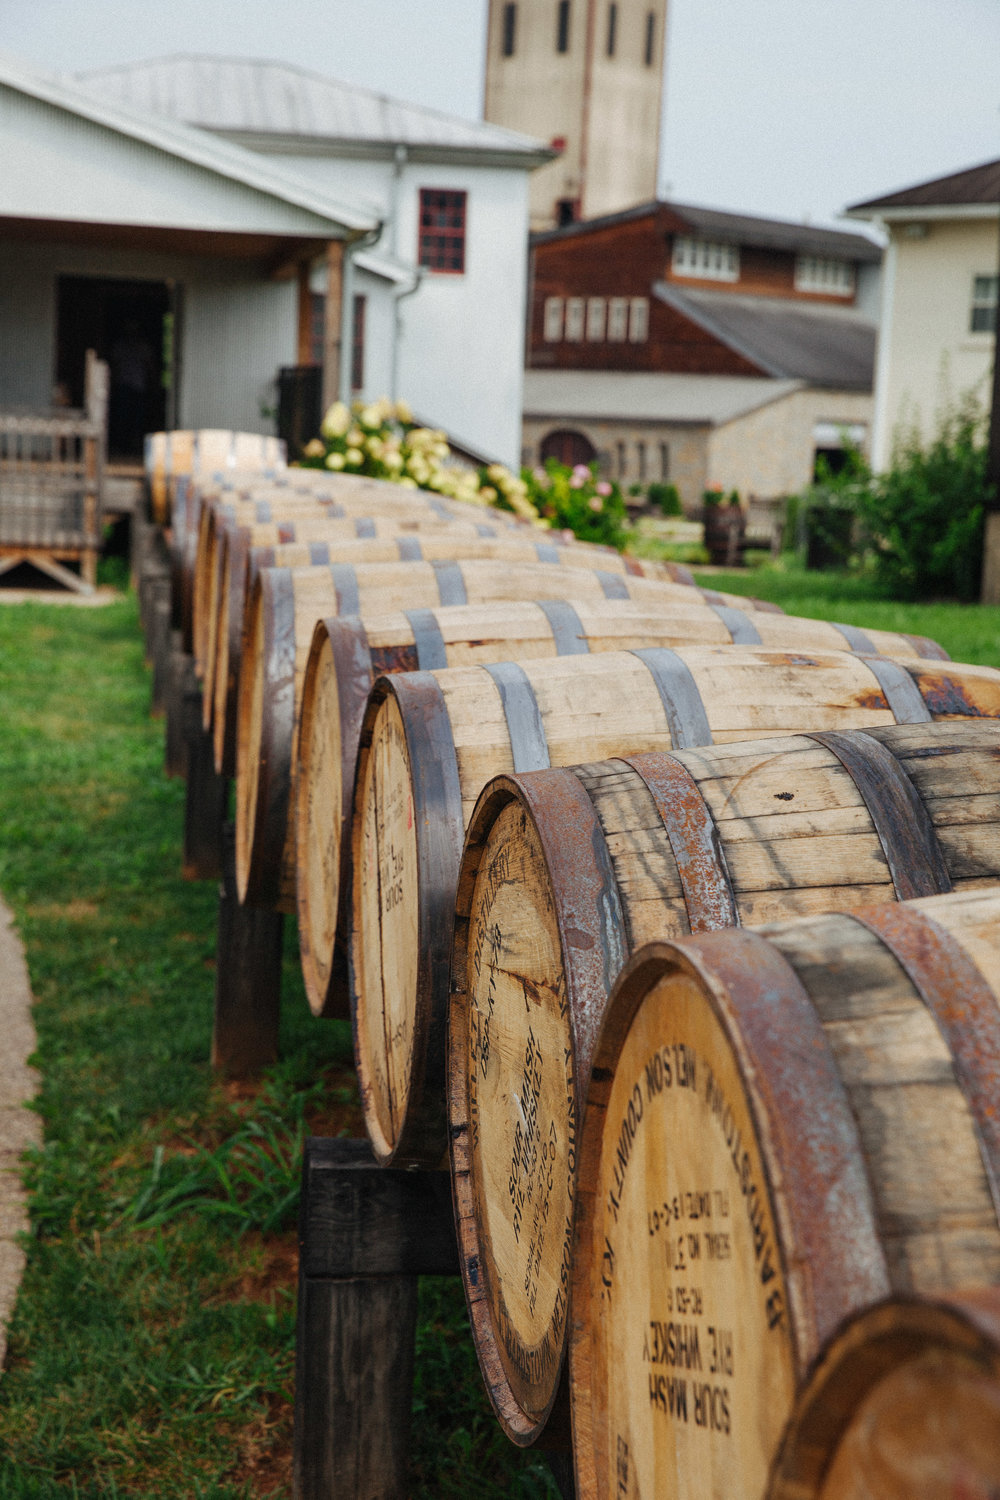 A unique tour at the Willett Distillery in Bardstown, Kentucky, one of the last remaining family owned whiskey distilleries.